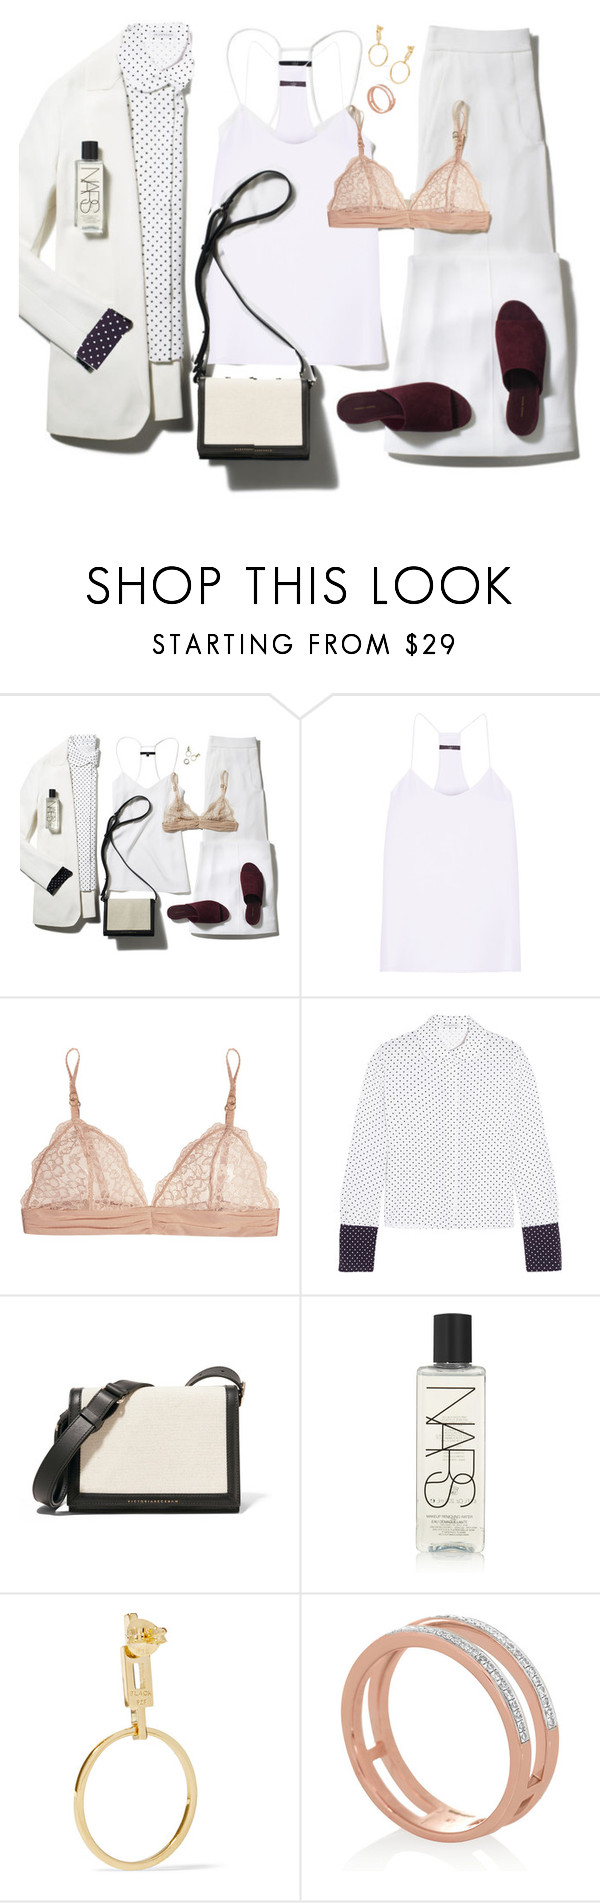 """THE LOOK: Silky separates"" by lidia-solymosi ❤ liked on Polyvore featuring TIBI, STELLA McCARTNEY, J.W. Anderson, Victoria Beckham, NARS Cosmetics, Maria Black and Monica Vinader"